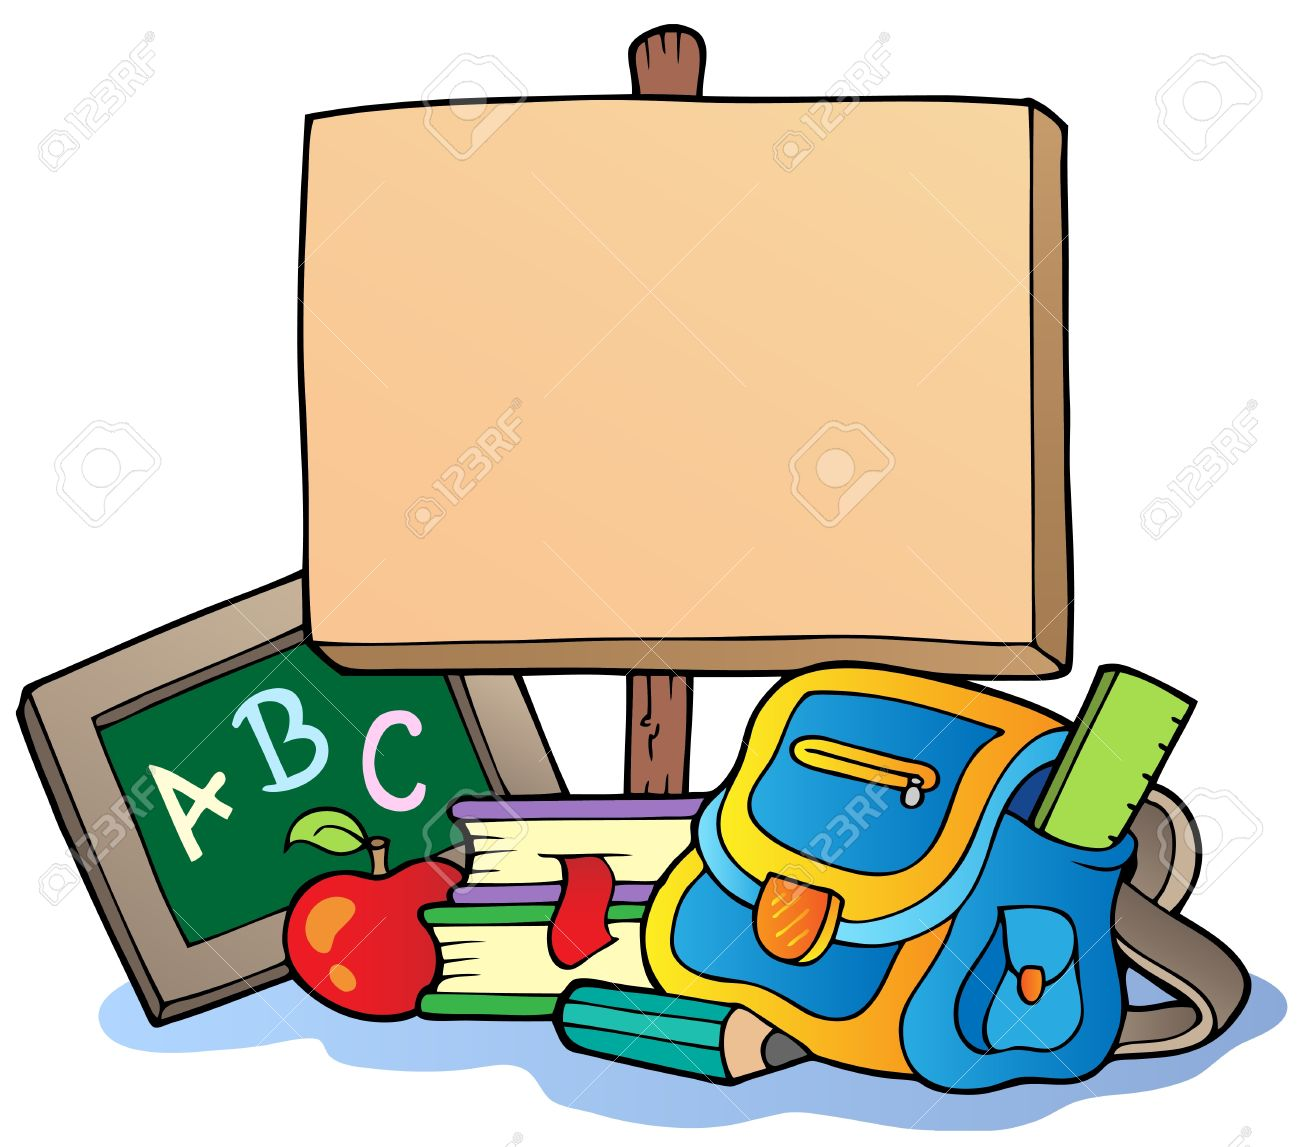 1300x1147 School Theme With Wooden Board Royalty Free Cliparts, Vectors,